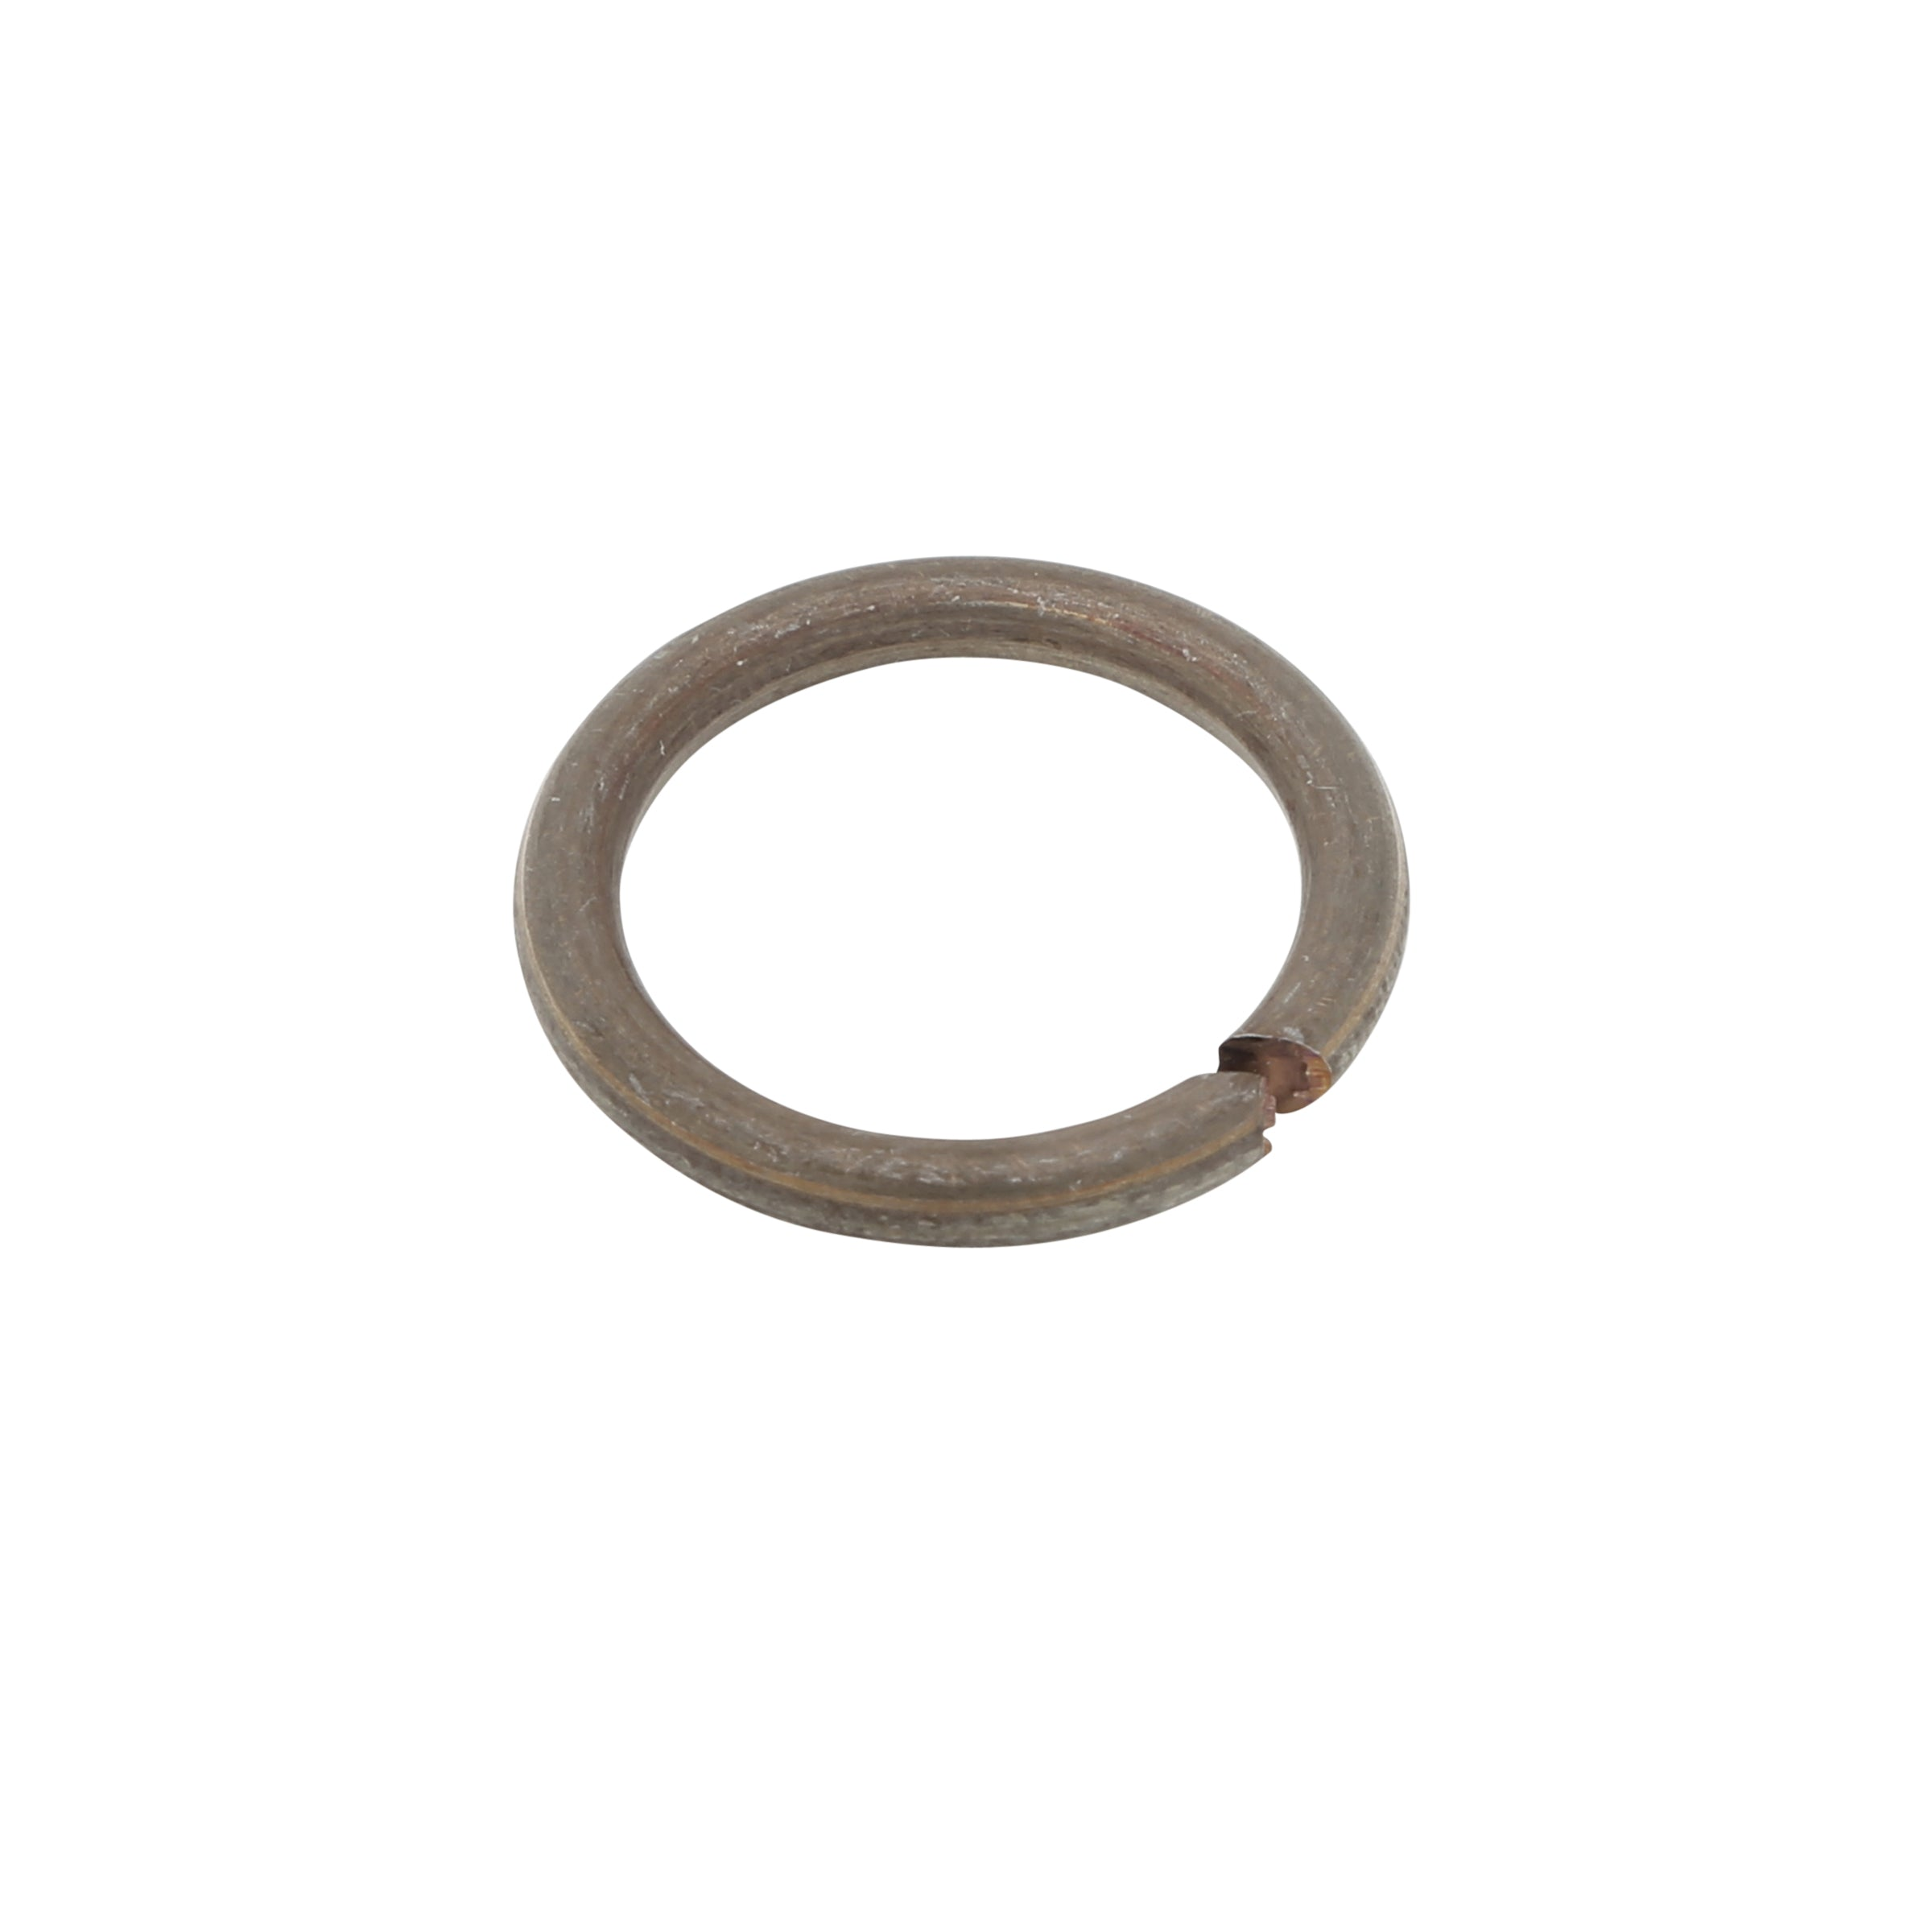 Main Shaft Pilot Bearing Spacer • 1928-48